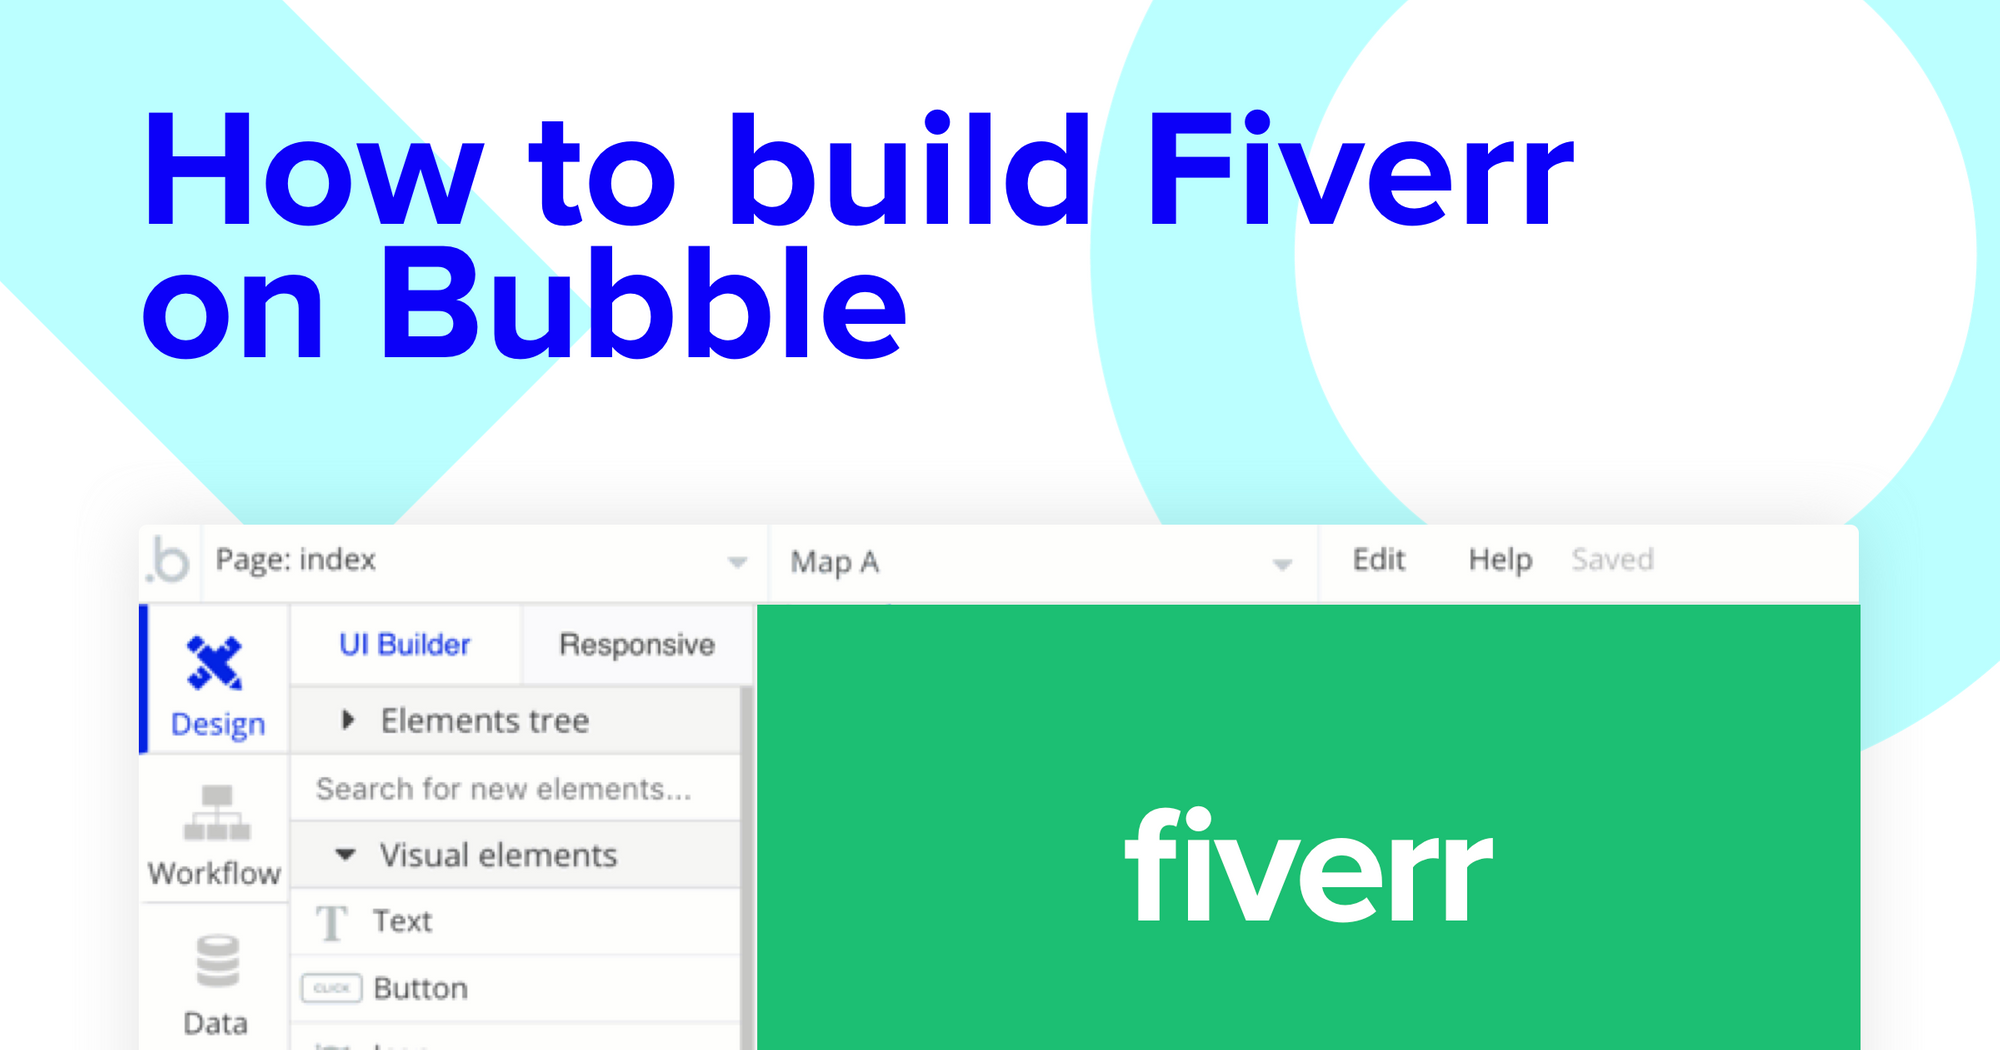 How To Build A Fiverr Clone Without Code